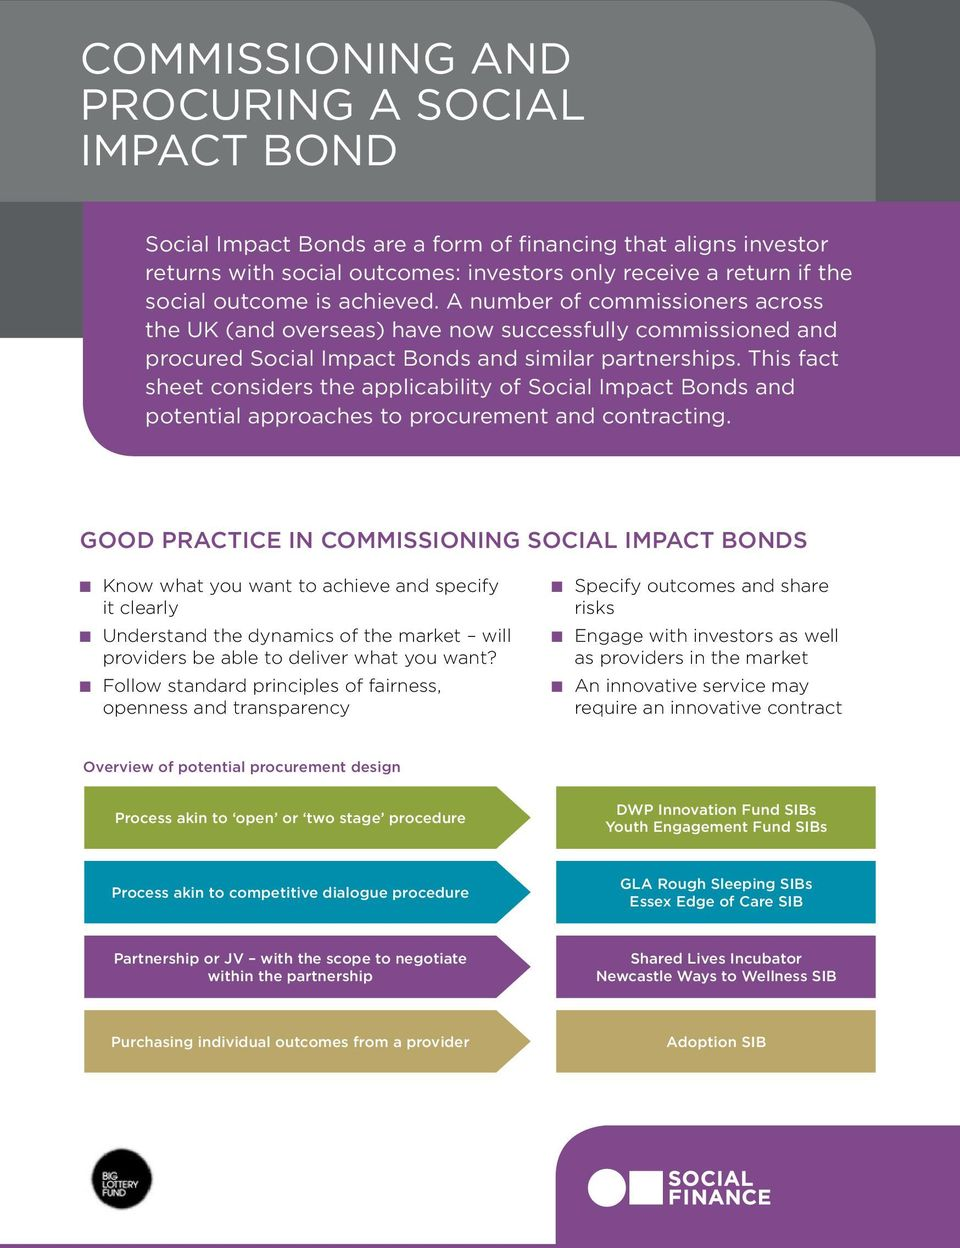 This fact sheet considers the applicability of Social Impact Bonds and potential approaches to procurement and contracting.